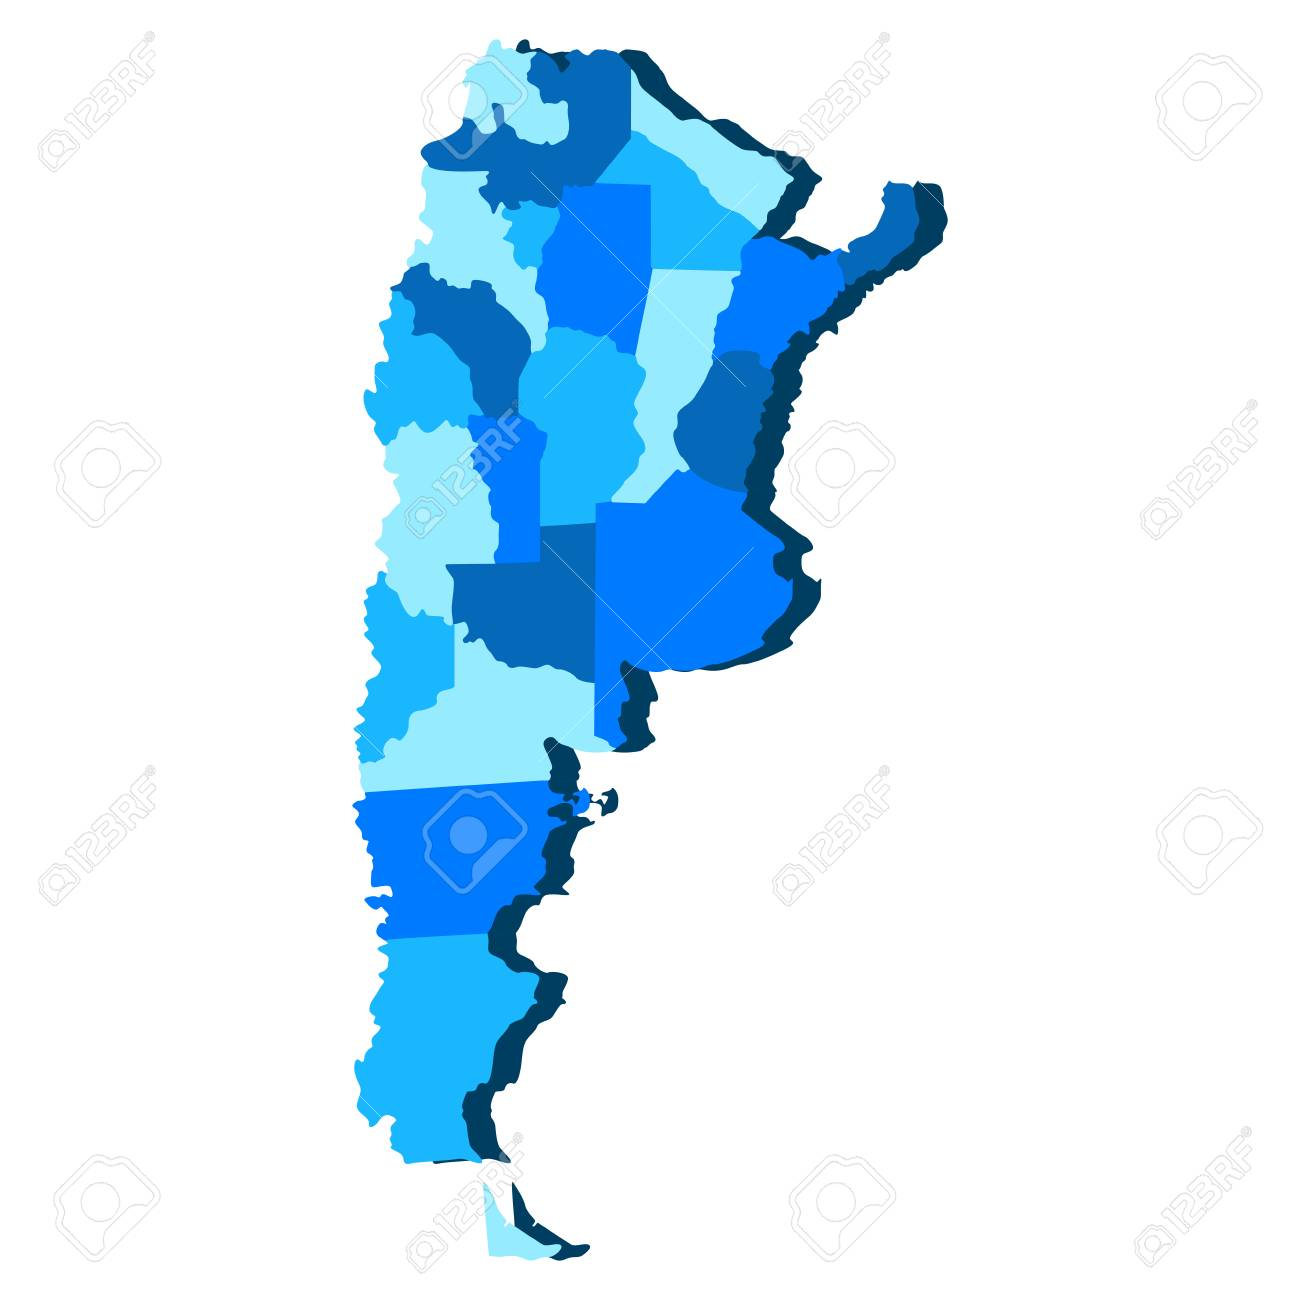 Political Map Of Argentina Vector Illustration Design Royalty Free